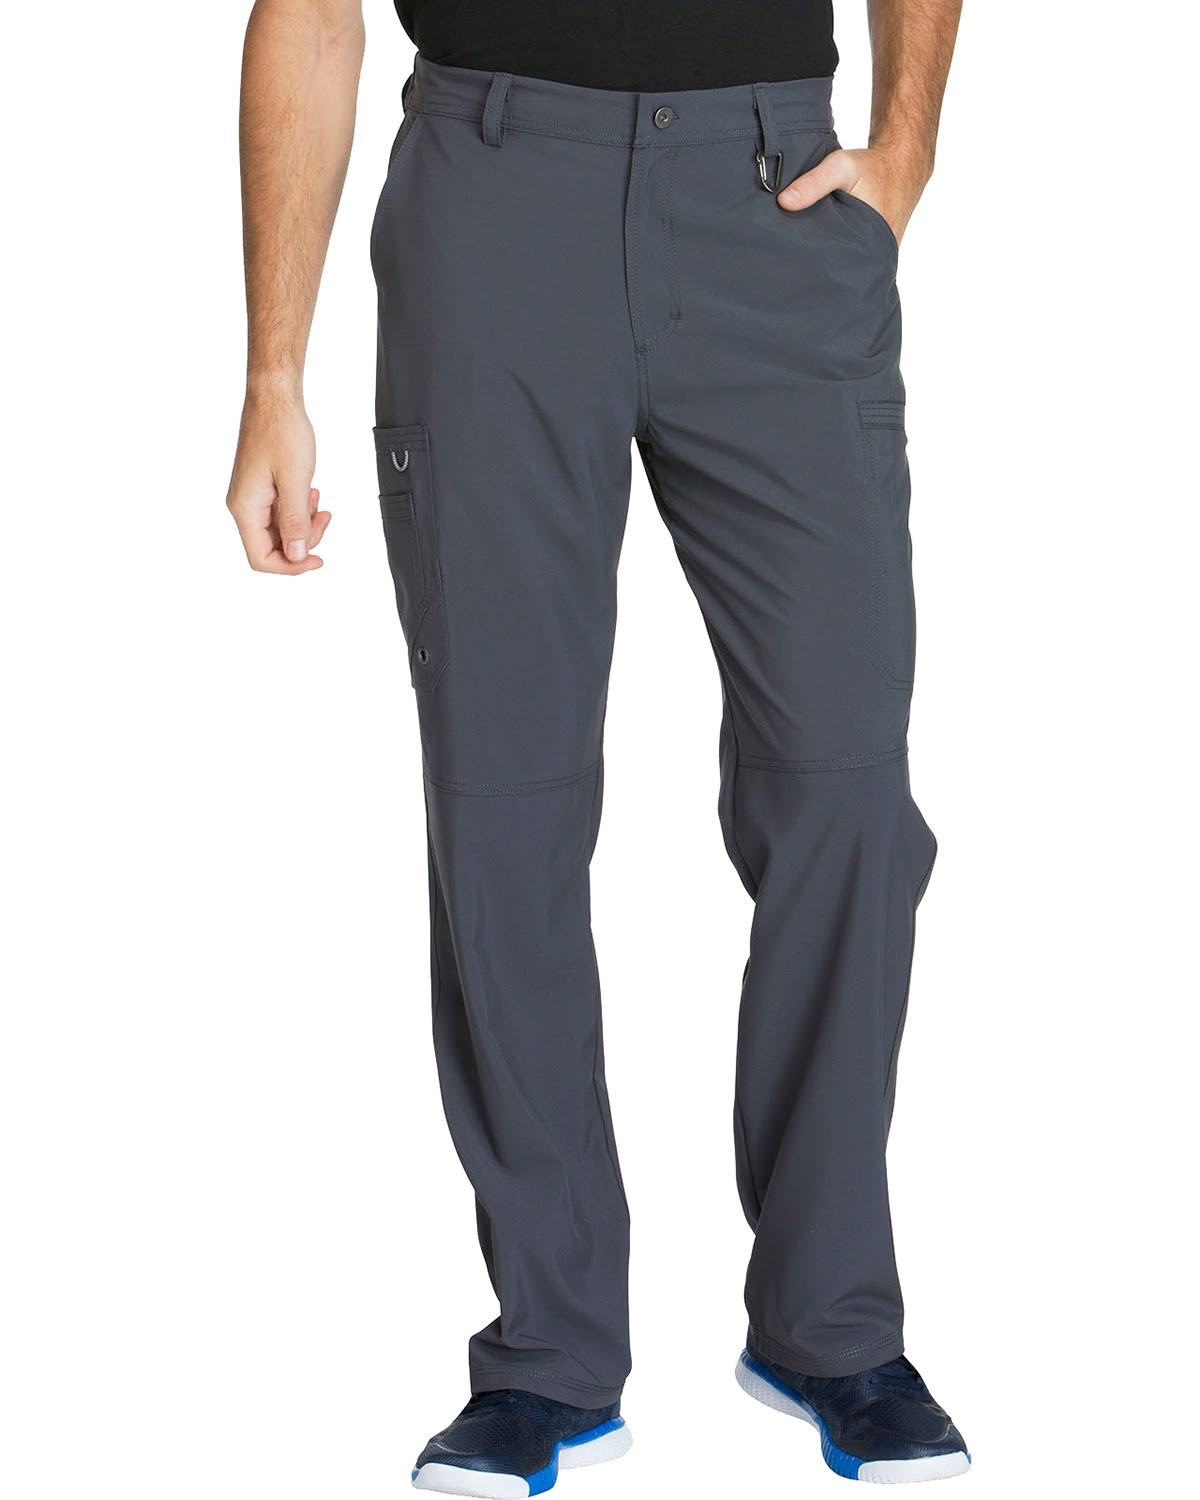 Cherokee Men's Infinity Fly Front Cargo Pants - Pewter, Large